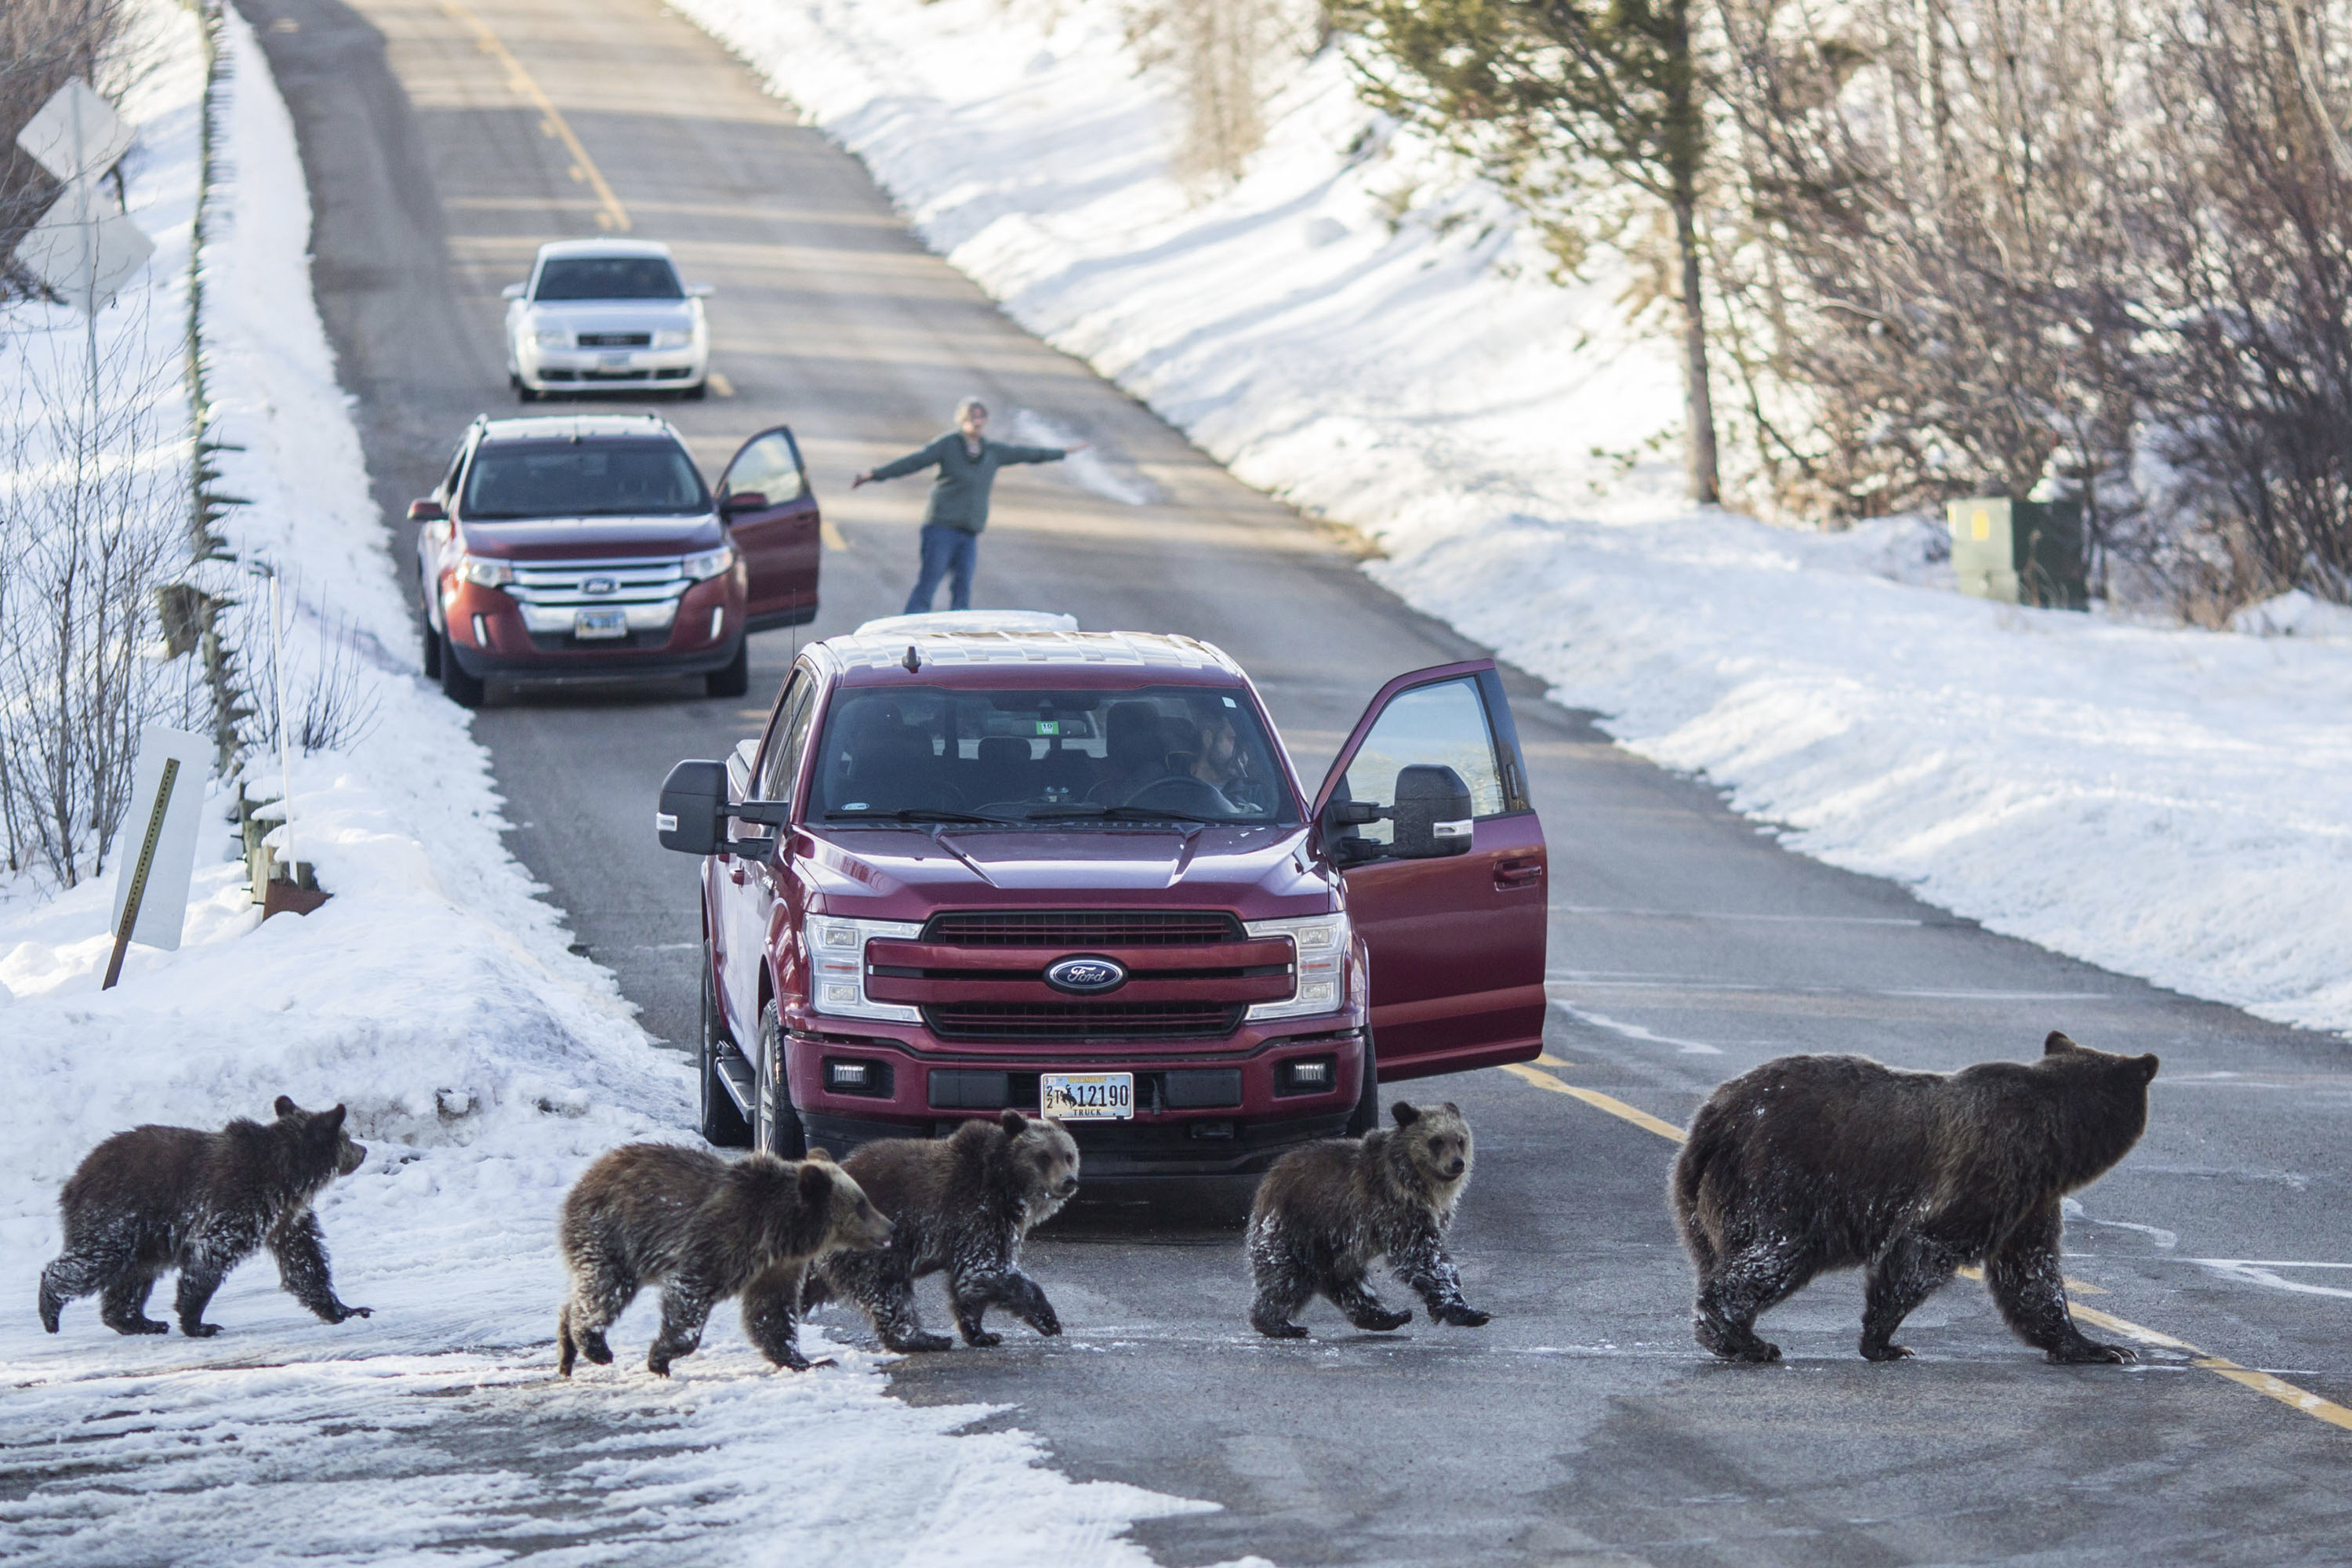 A grizzly bear and her four cubs cross a road in Jackson Hole, Wyoming in November. Many people watched and followed the travels of the this particular well-known, 24-year-old bear and her cubs until they denned for the winter.